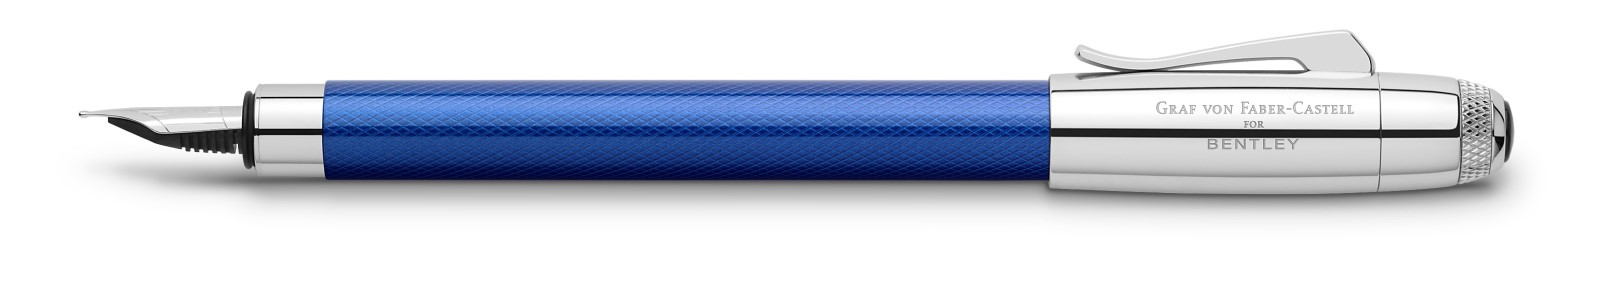 Graf von Faber Castell for Bentley Sequin Blue Fountain Pen